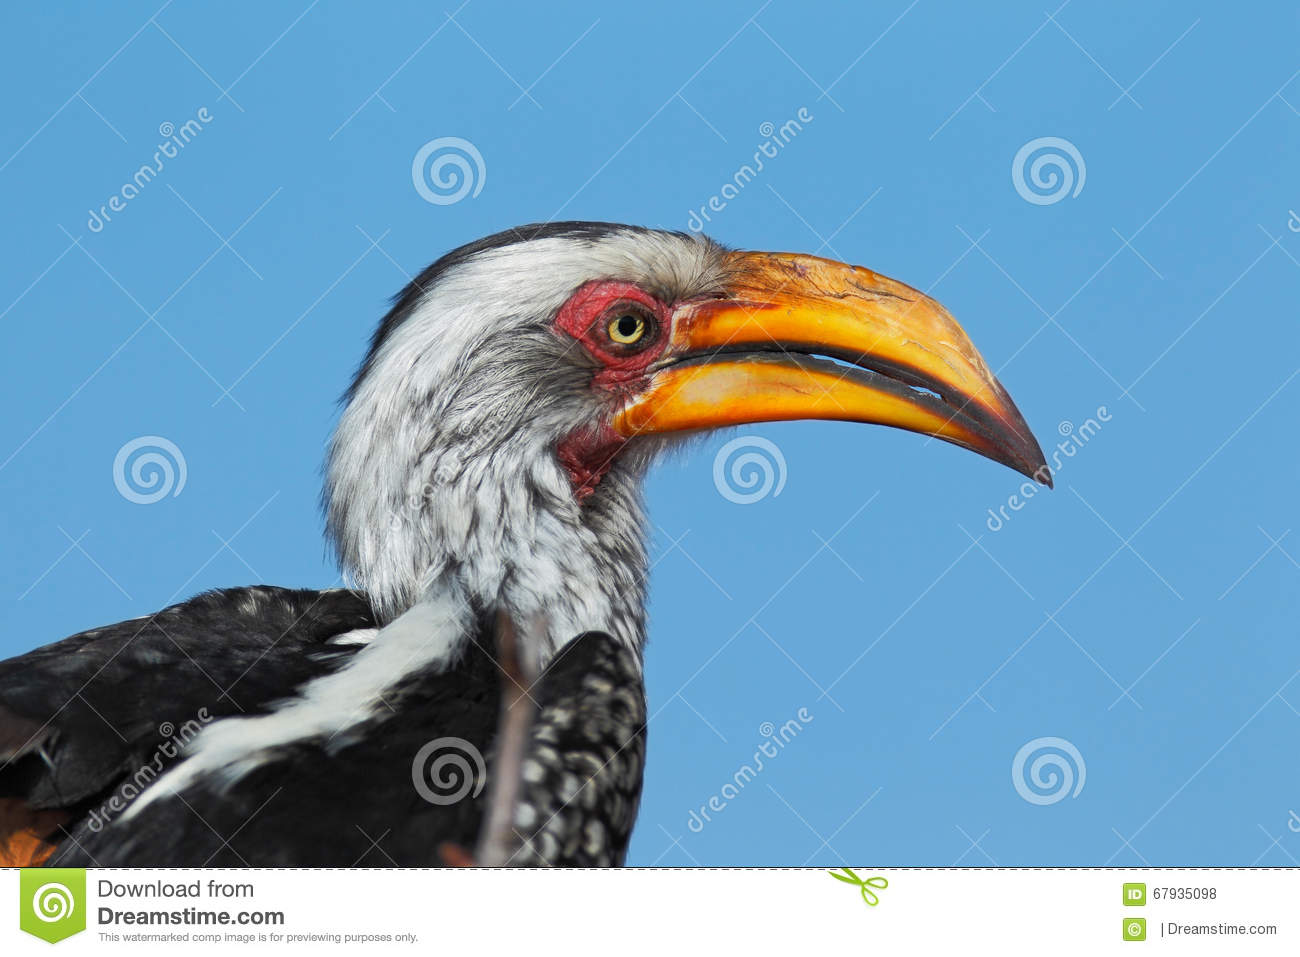 Southern Yellow-billed Hornbill clipart #7, Download drawings